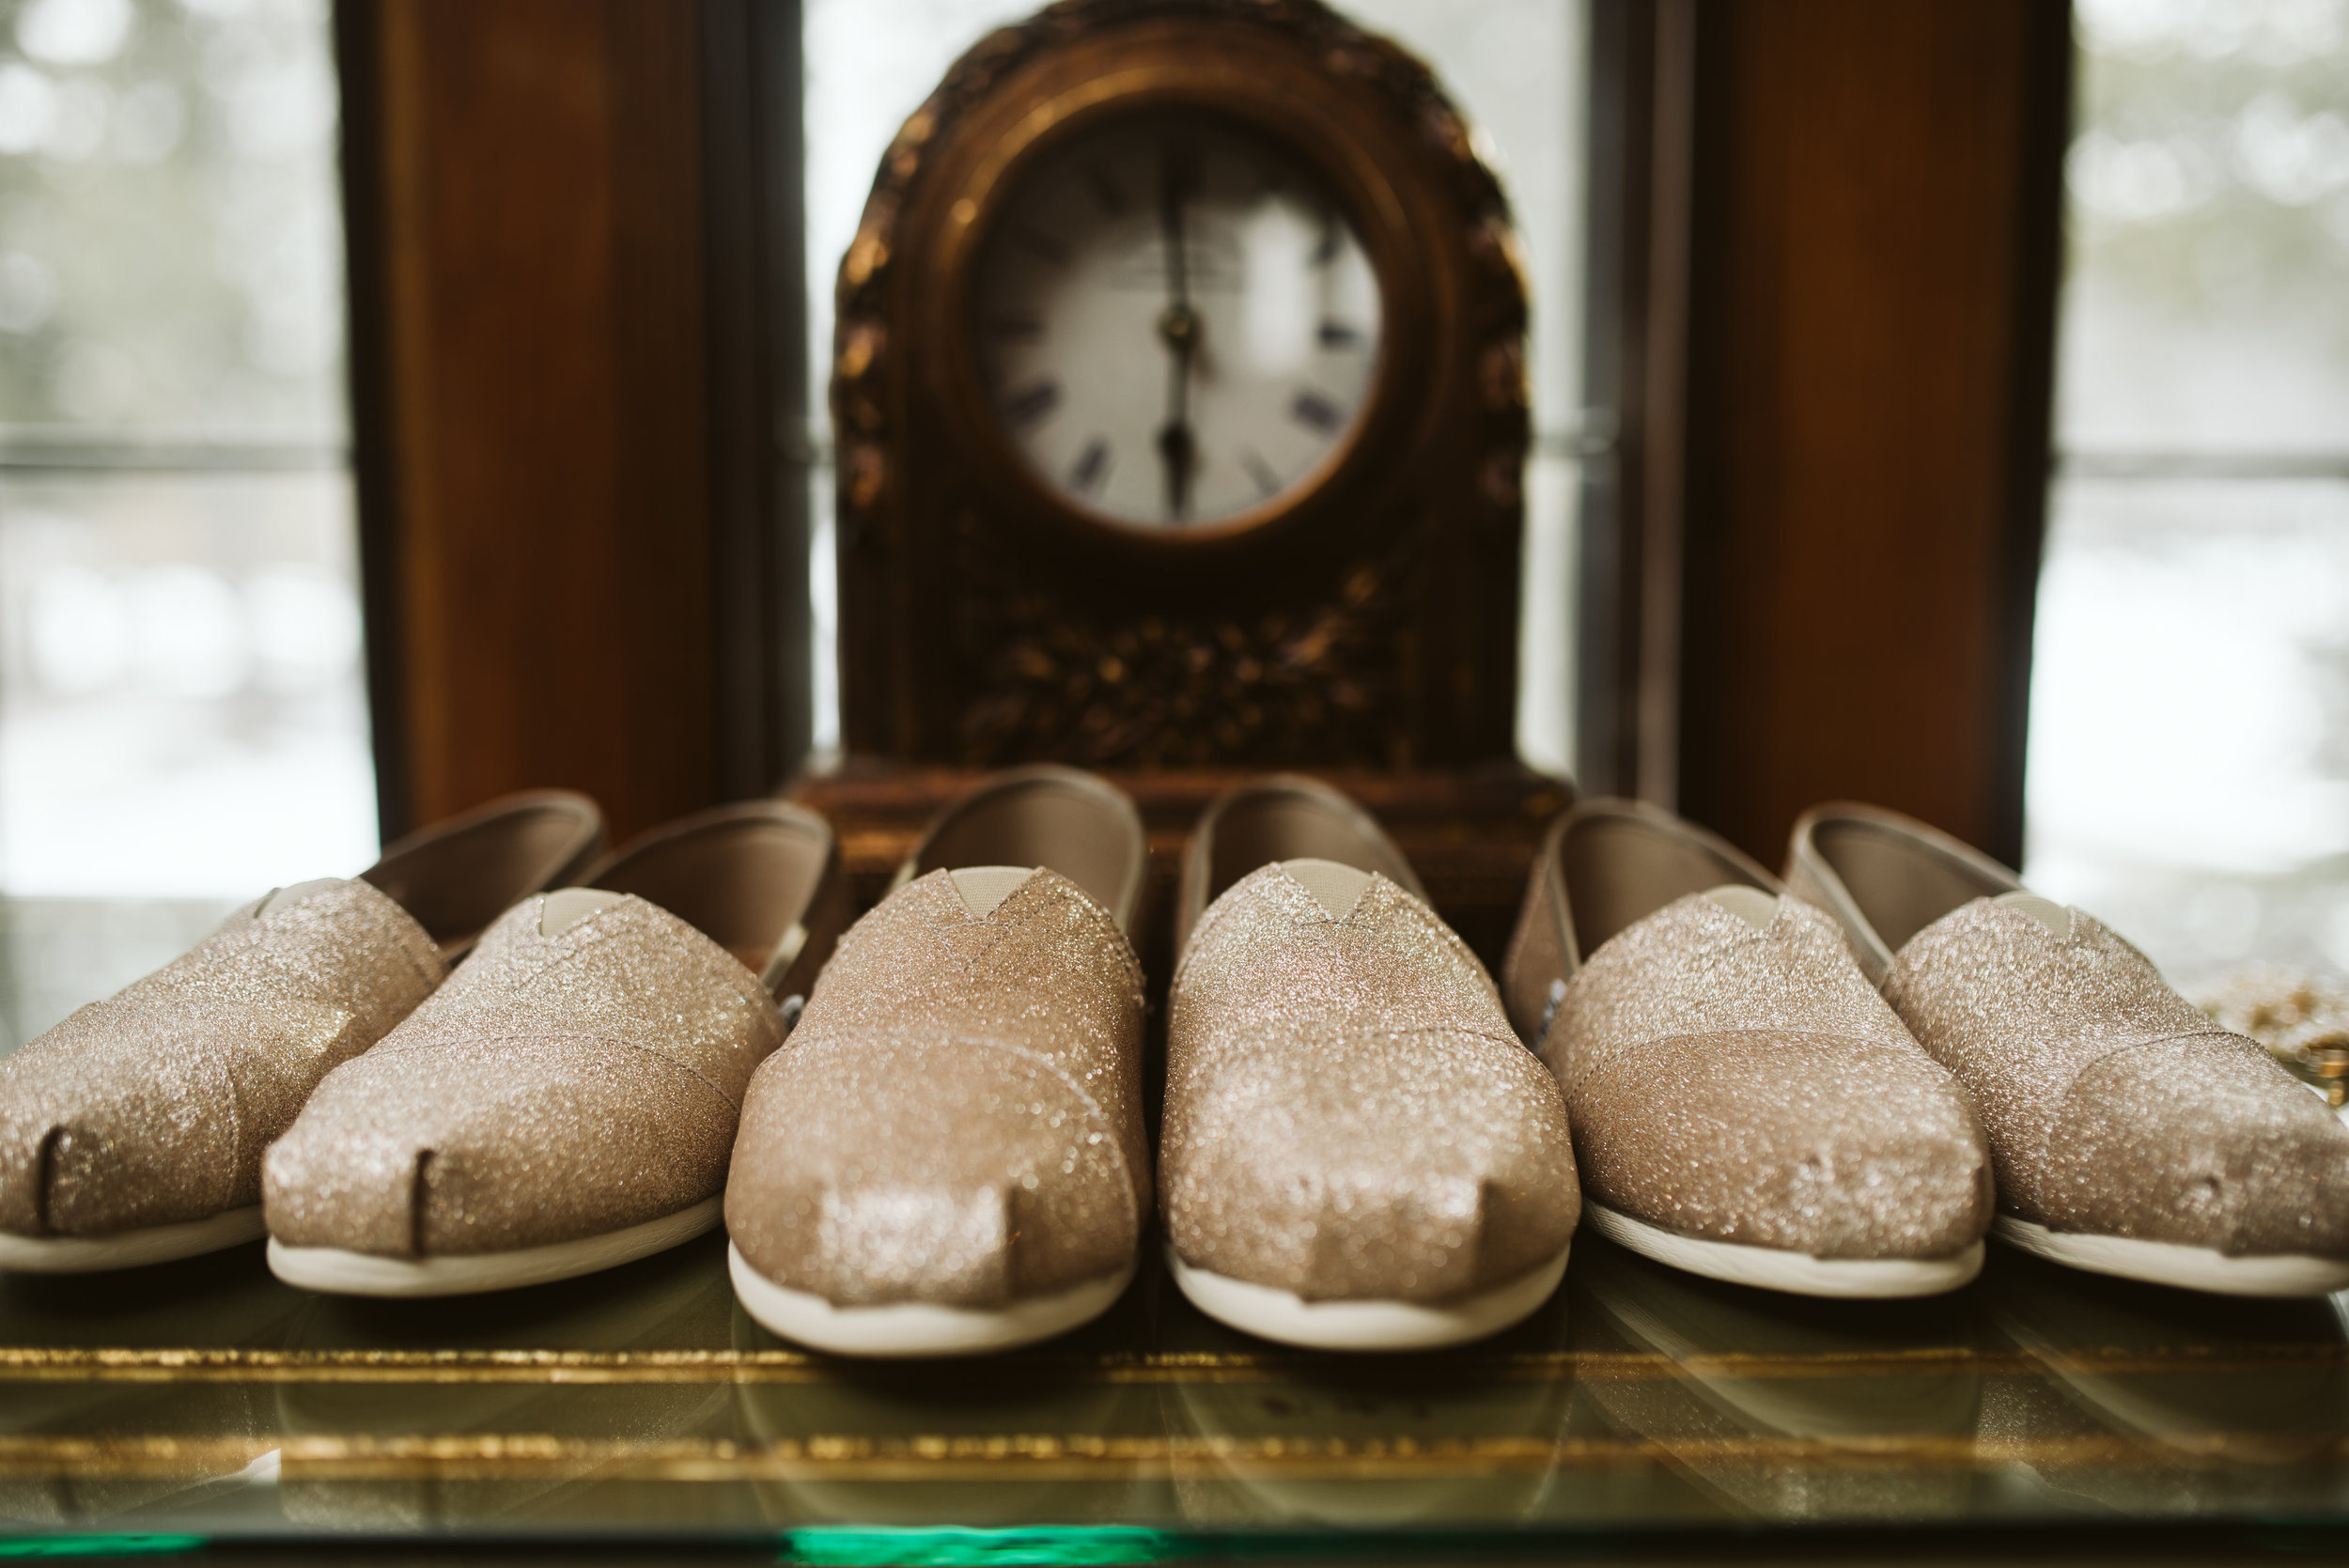 Brides and bridesmaid shoes in front of a clock